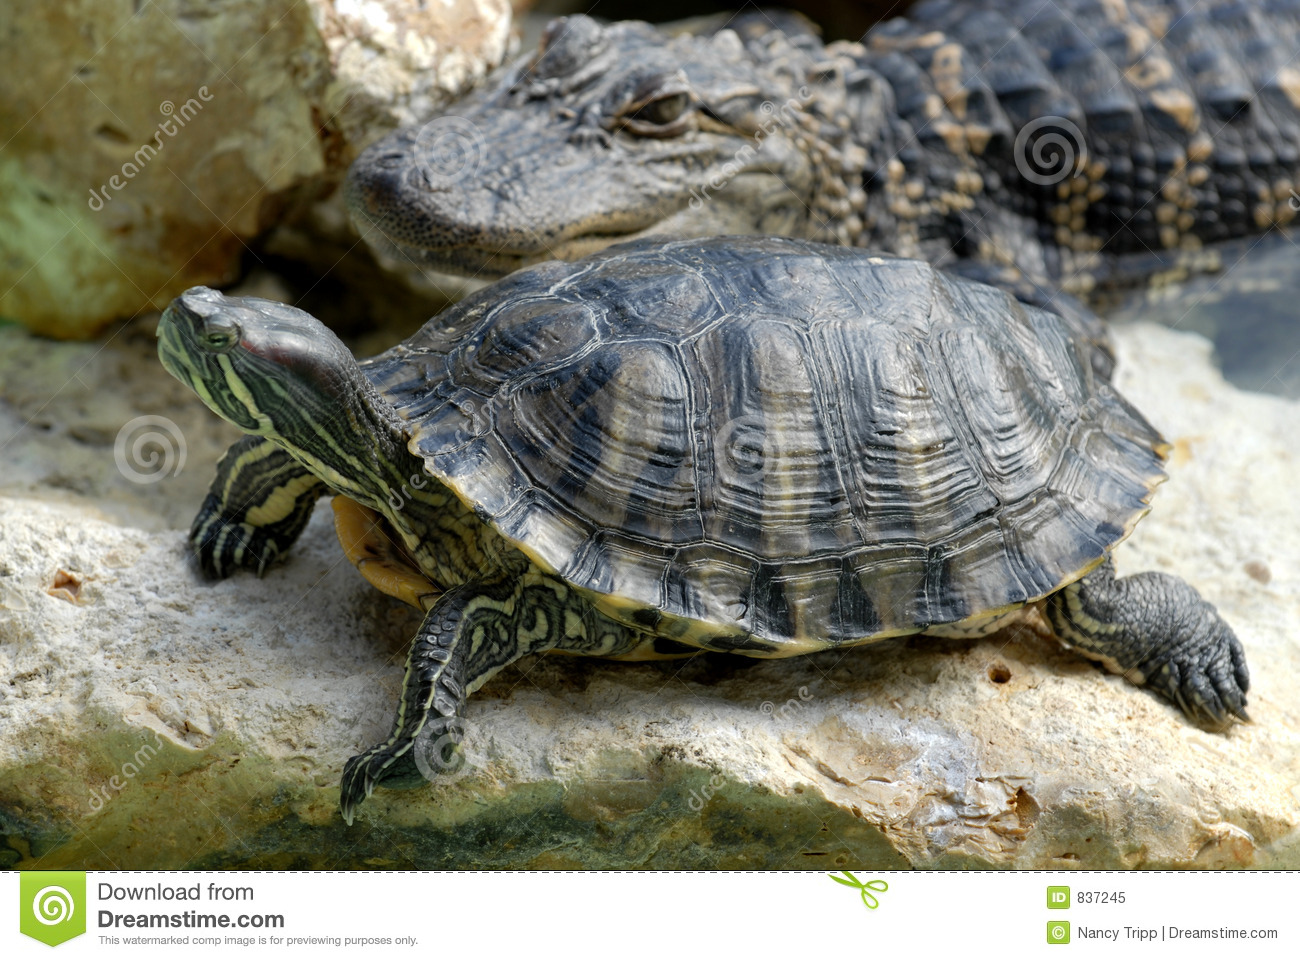 Gator and Turtle